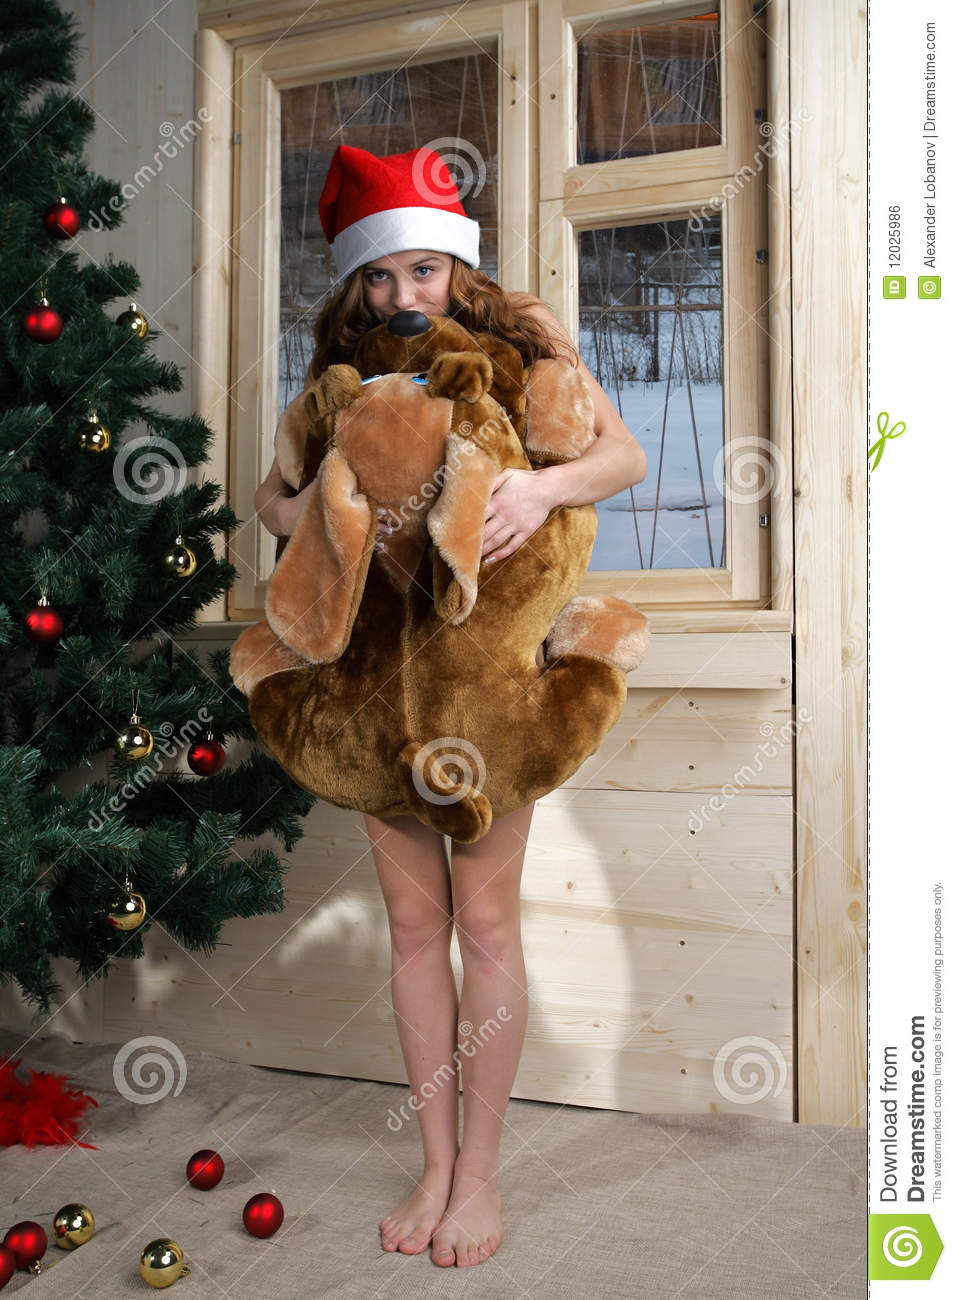 Exaggerate. confirm. naked girls in santa hats confirm